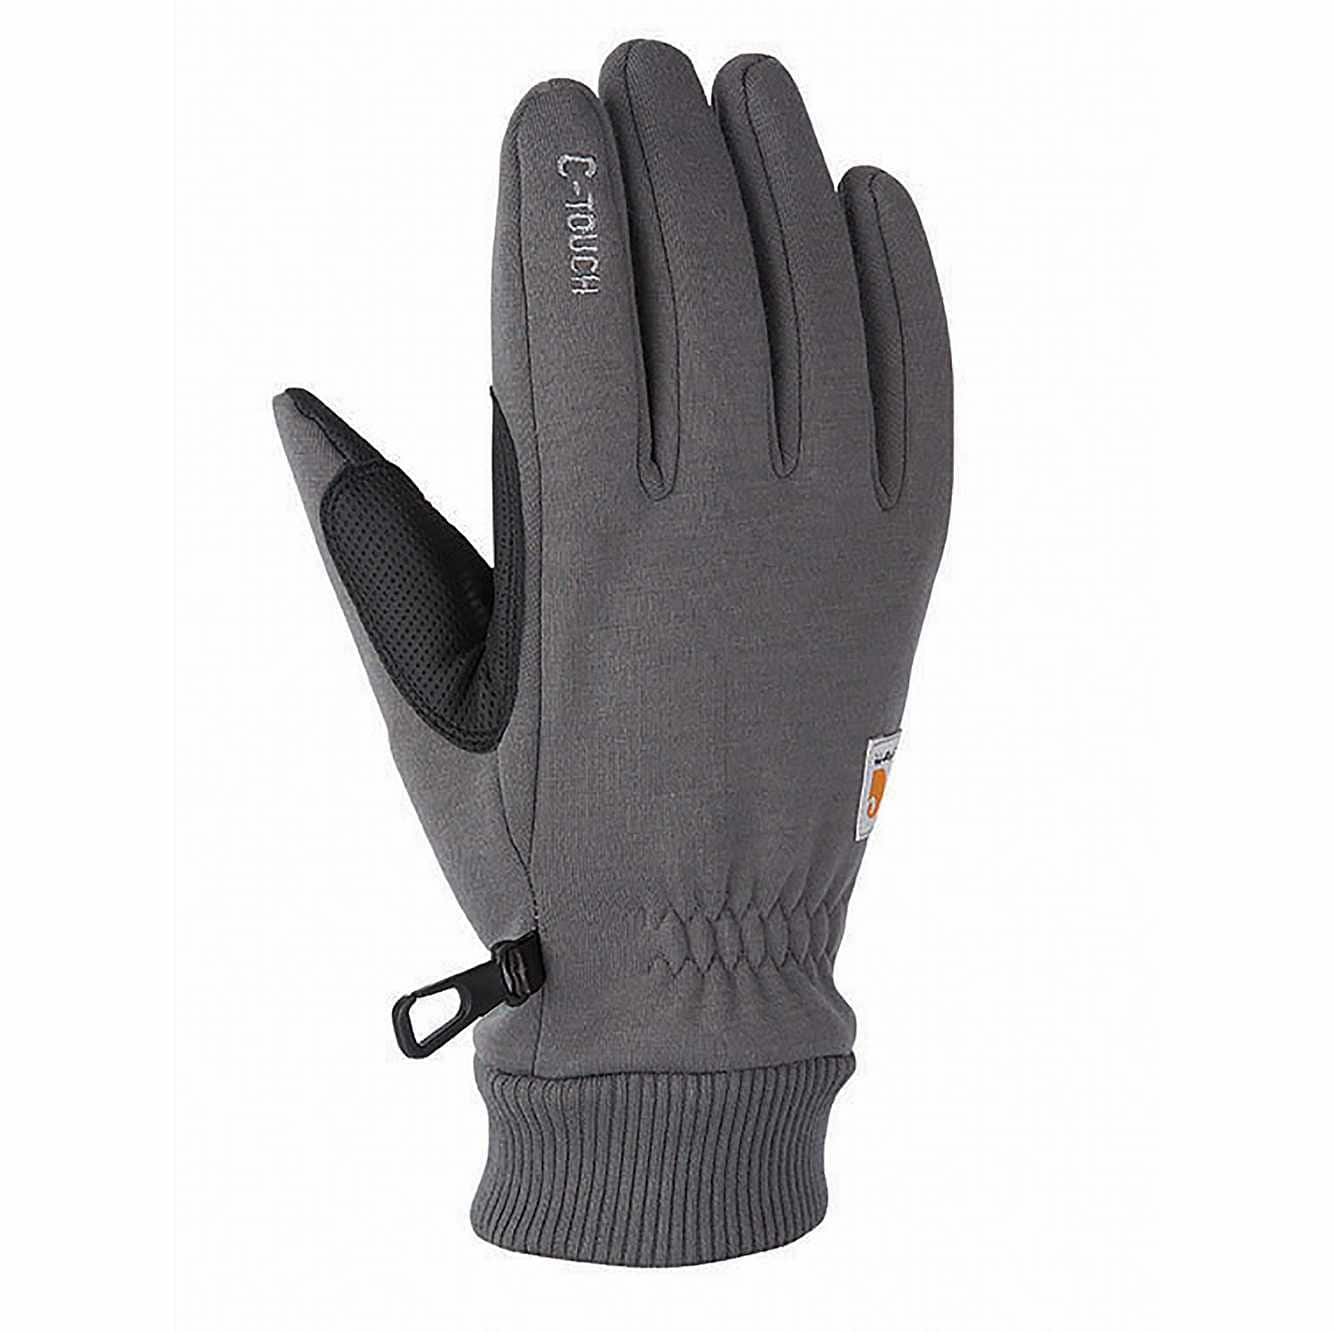 Picture of C-Touch Knit Glove in Carbon Heather